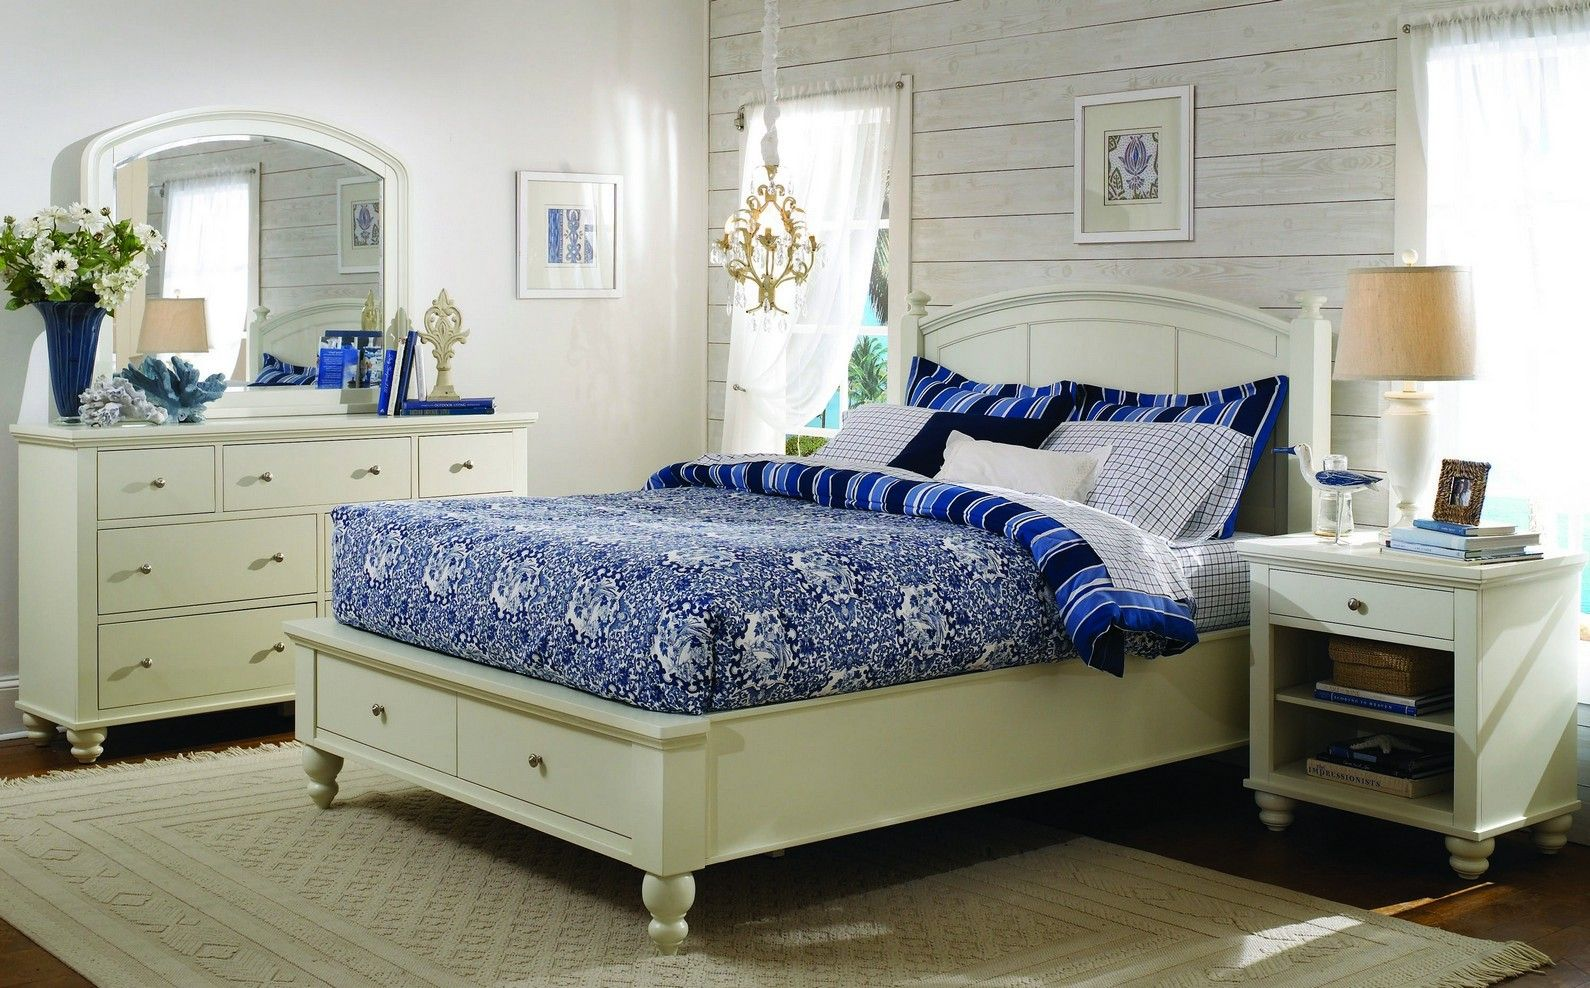 Bedroom organization cambridge eggshell queen bed with extra